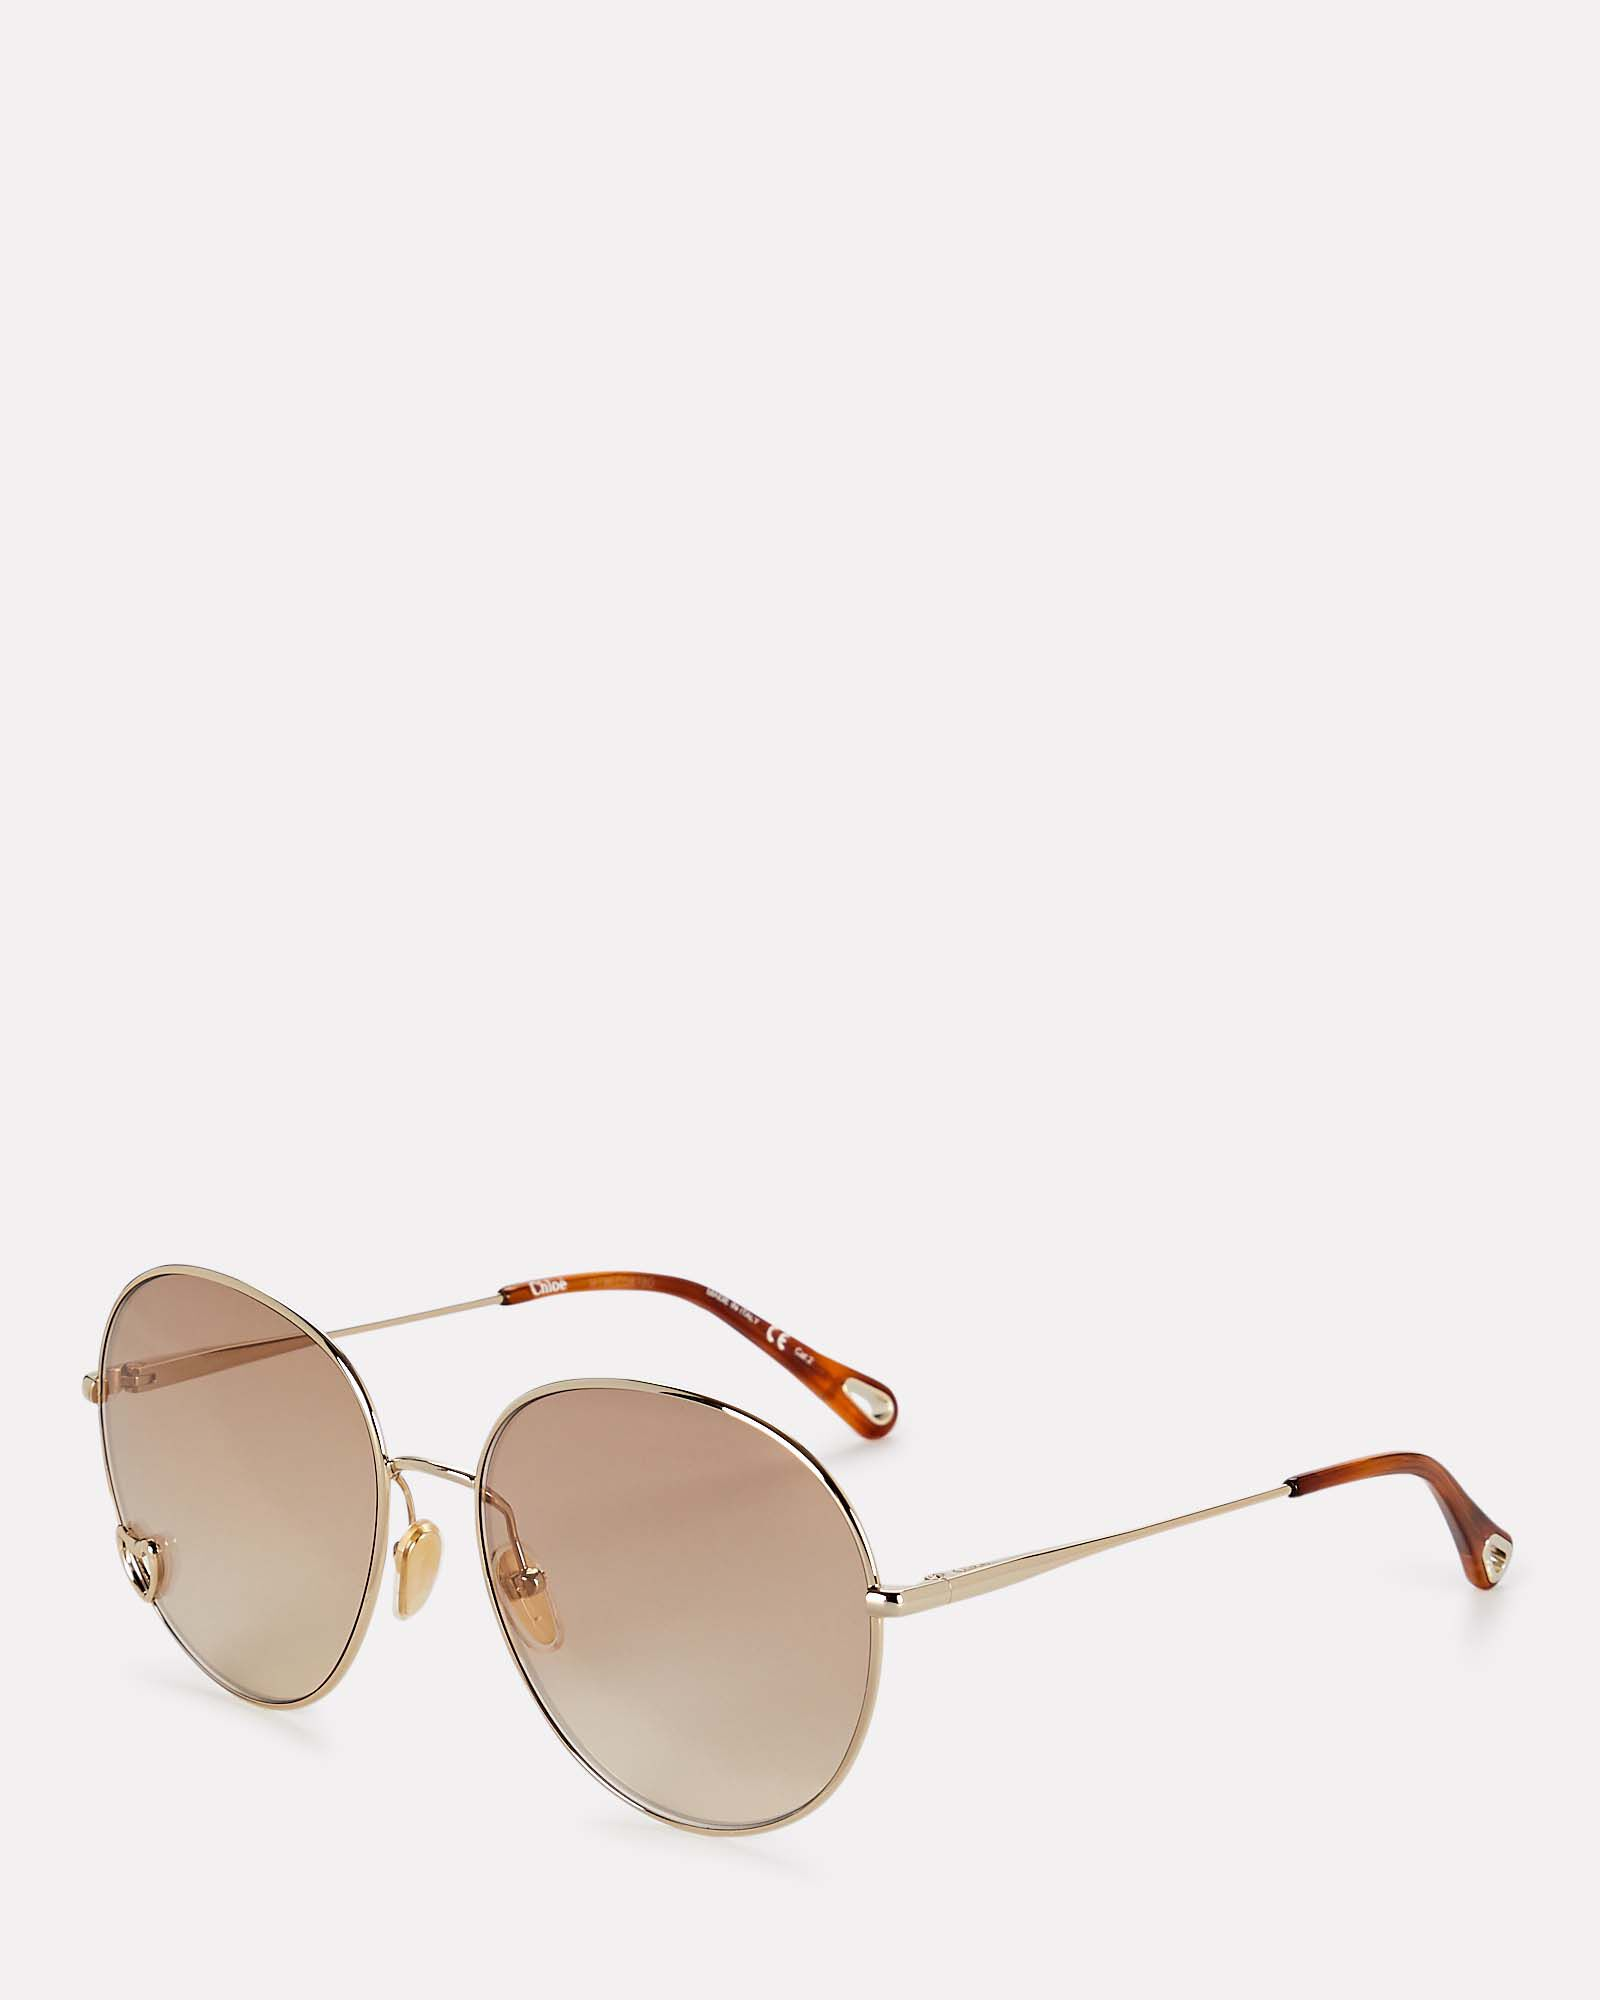 Oversized Round Wire Sunglasses, GOLD, hi-res